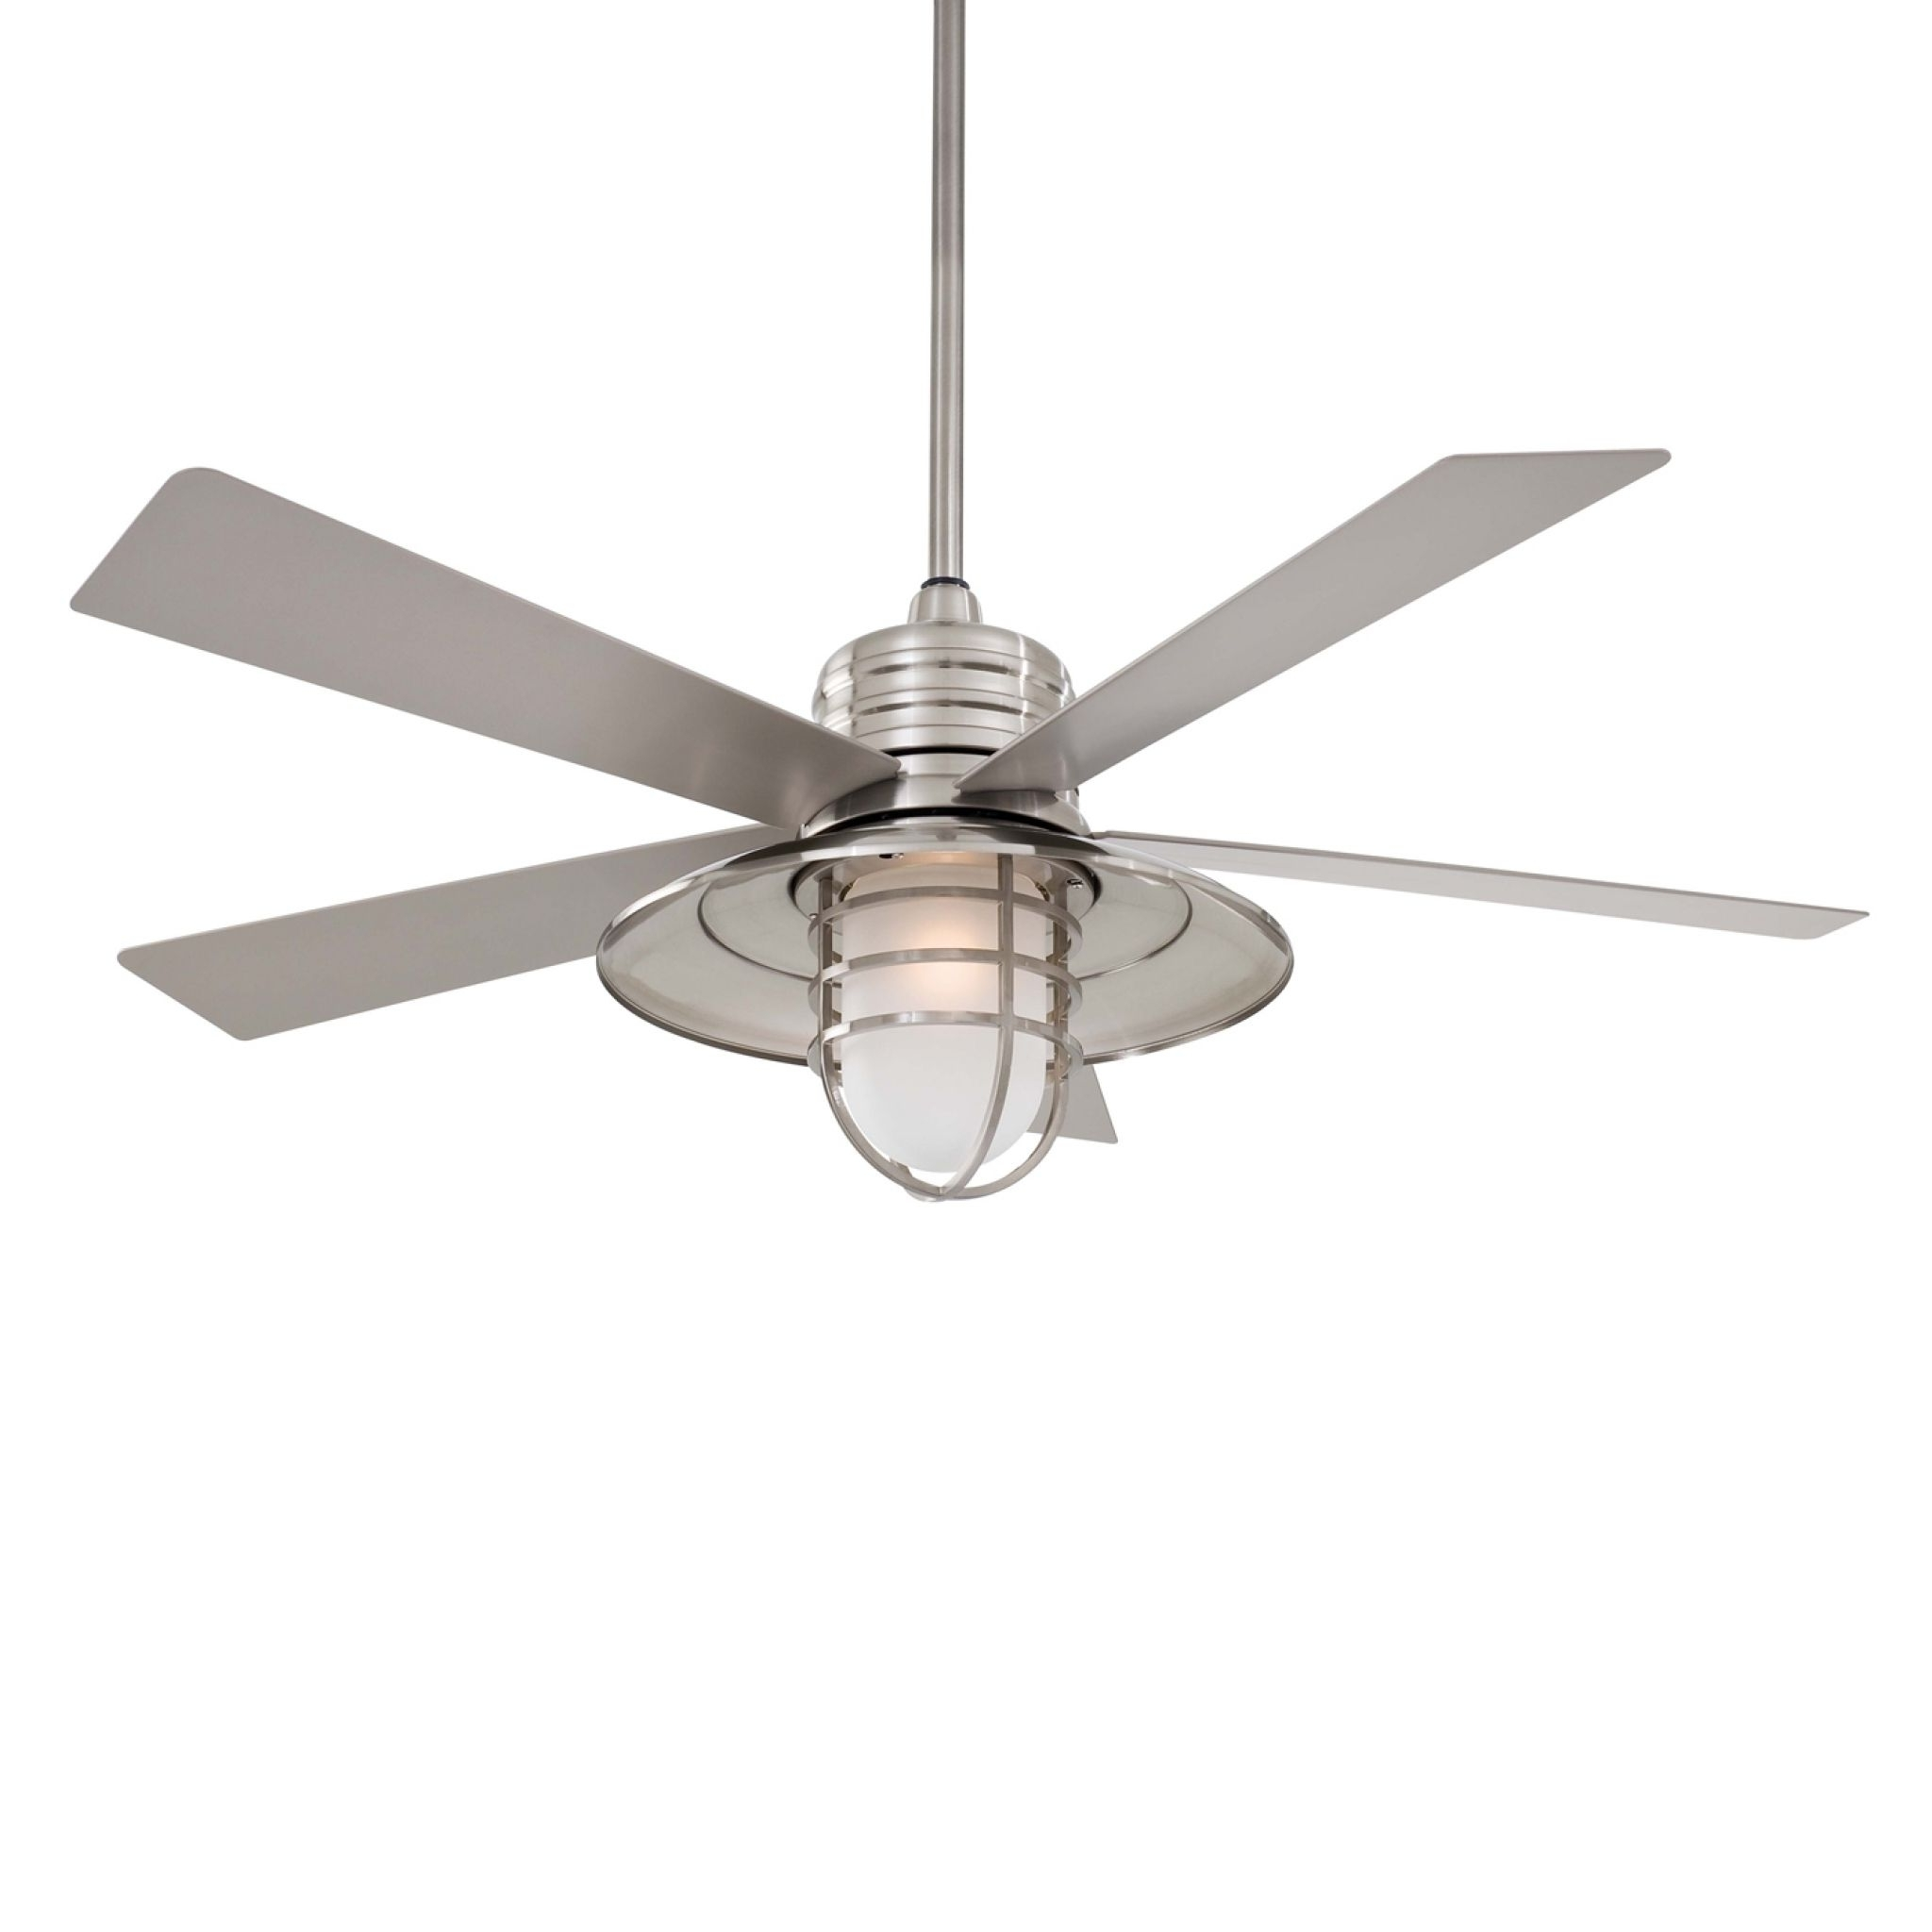 Small Outdoor Ceiling Fans With Lights With Well Known Small Outdoor Ceiling Fan With Light – Best Paint For Interior Walls (View 16 of 20)